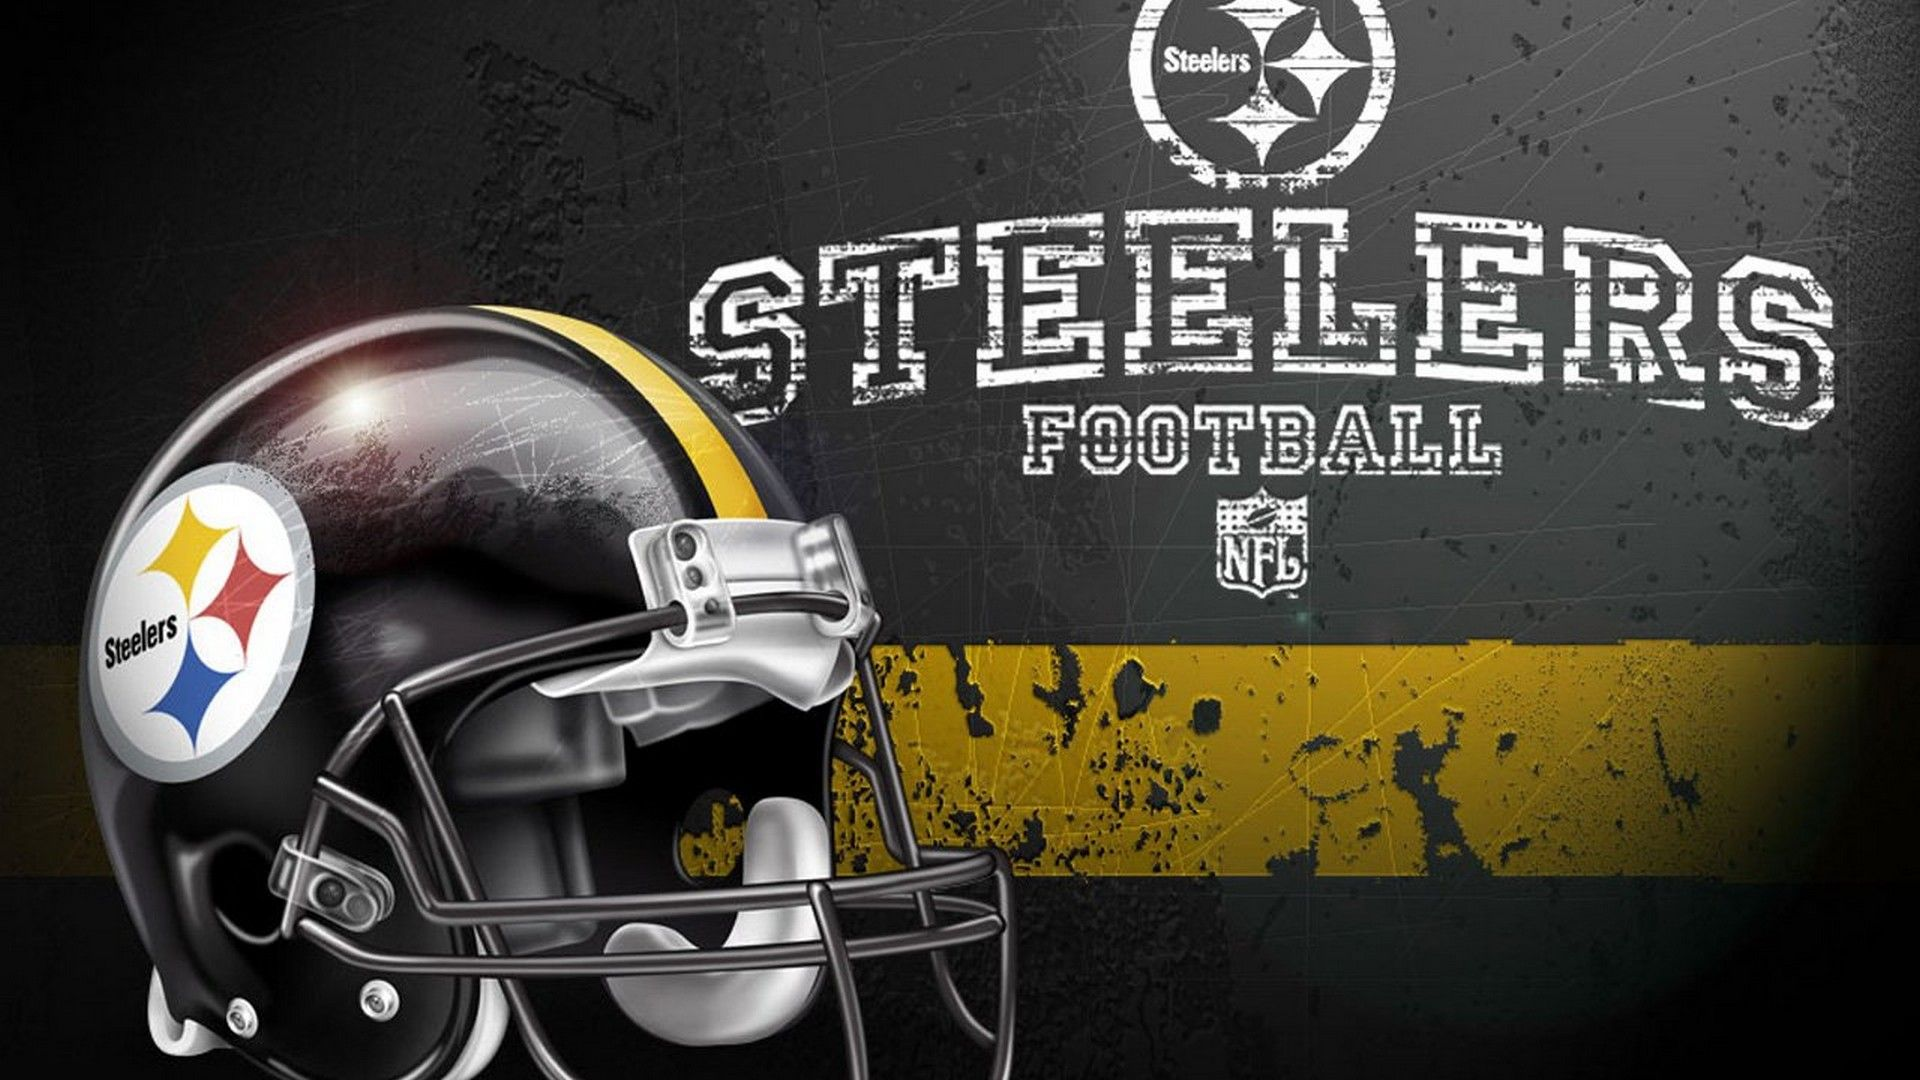 Steelers Wallpaper For Mac Backgrounds Steelers football